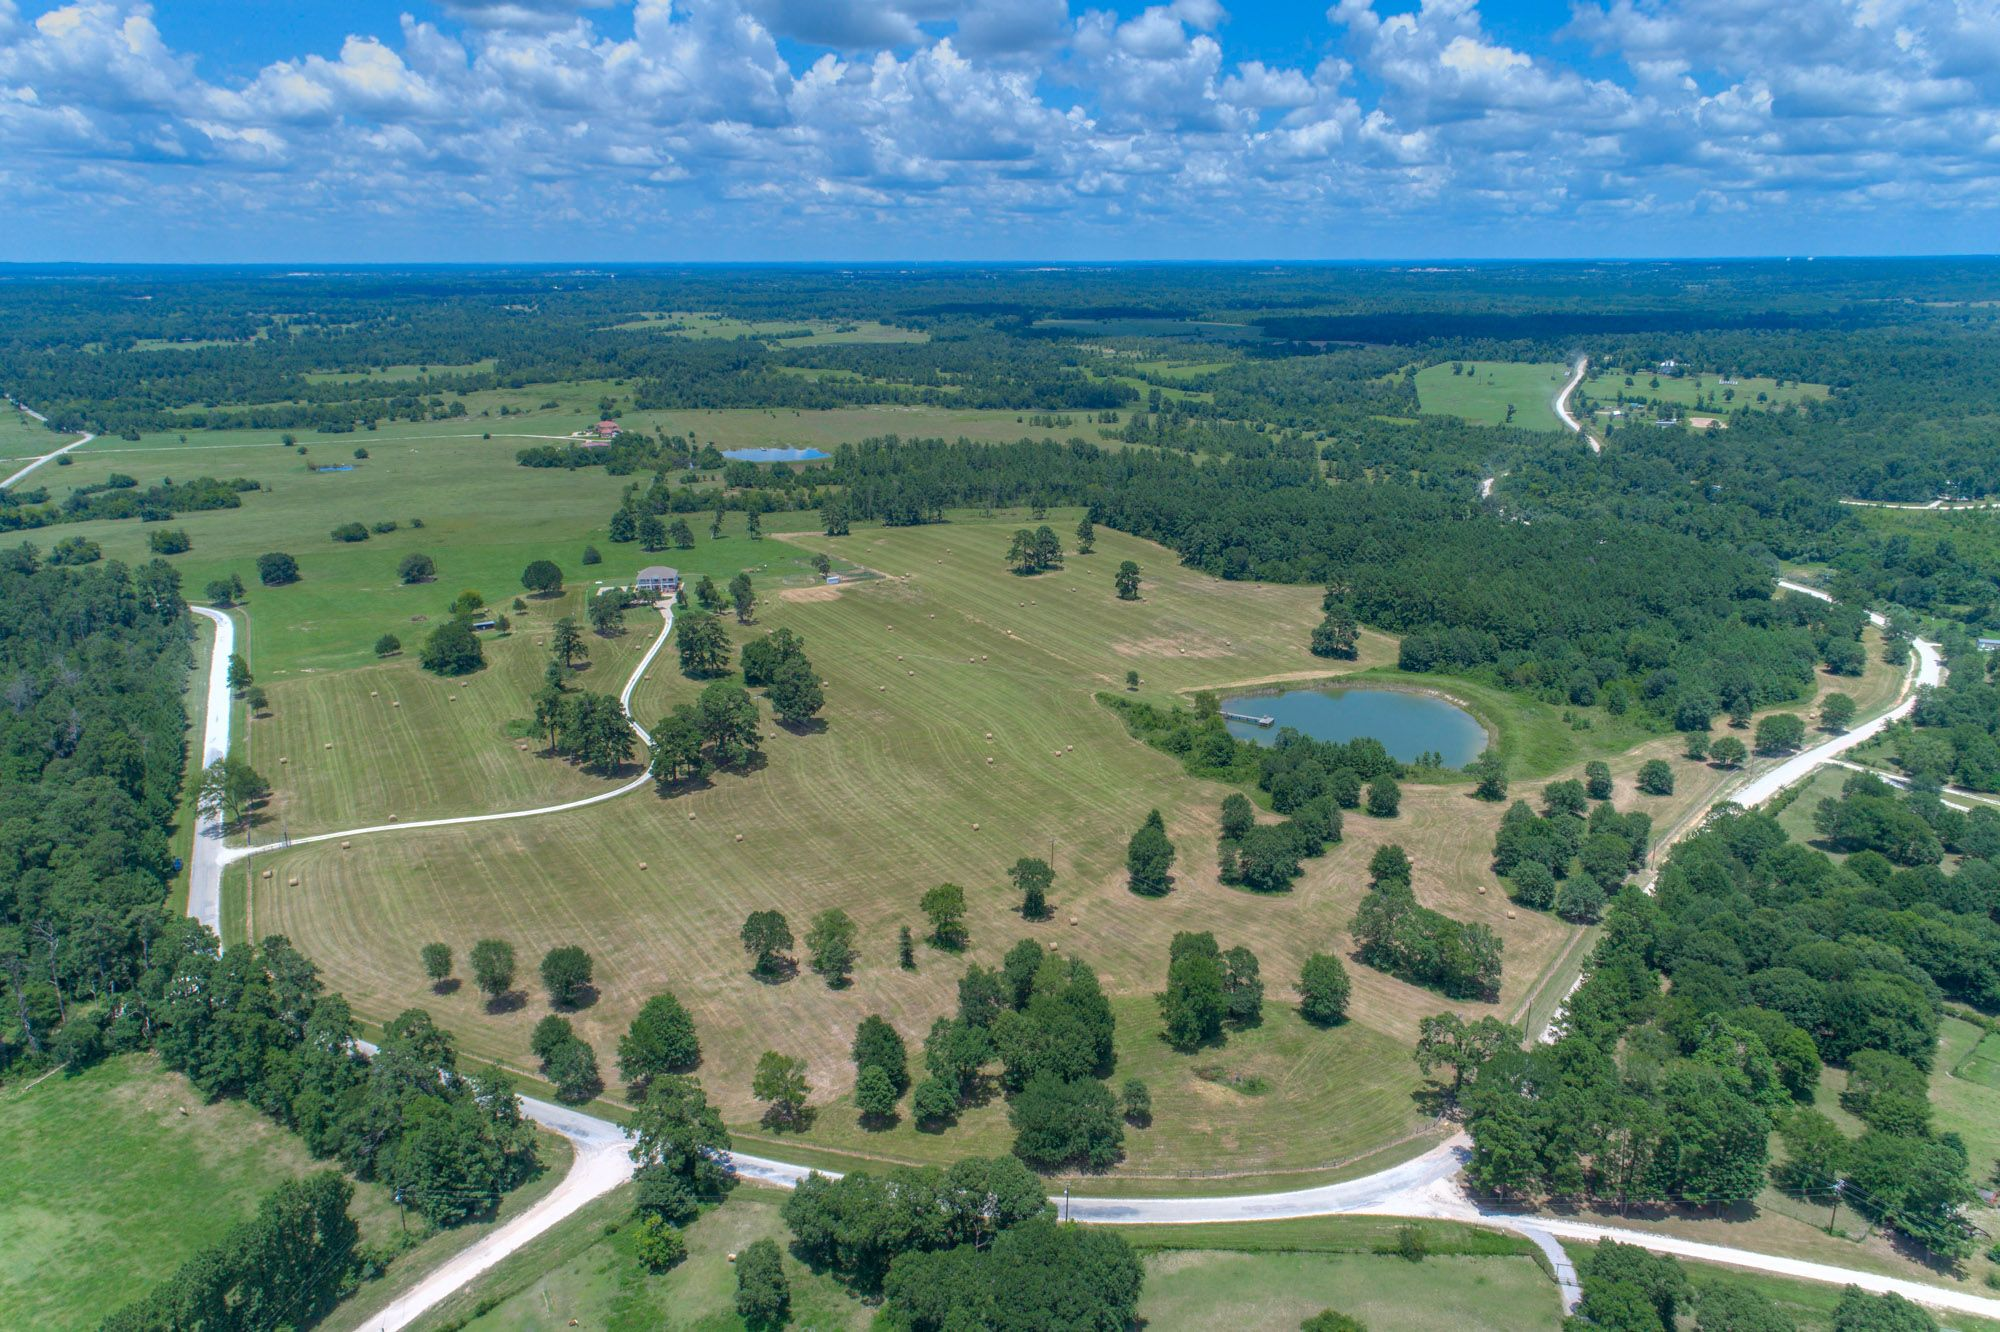 Pin by Haley Garcia on Homes for Sale Woodland, Golf